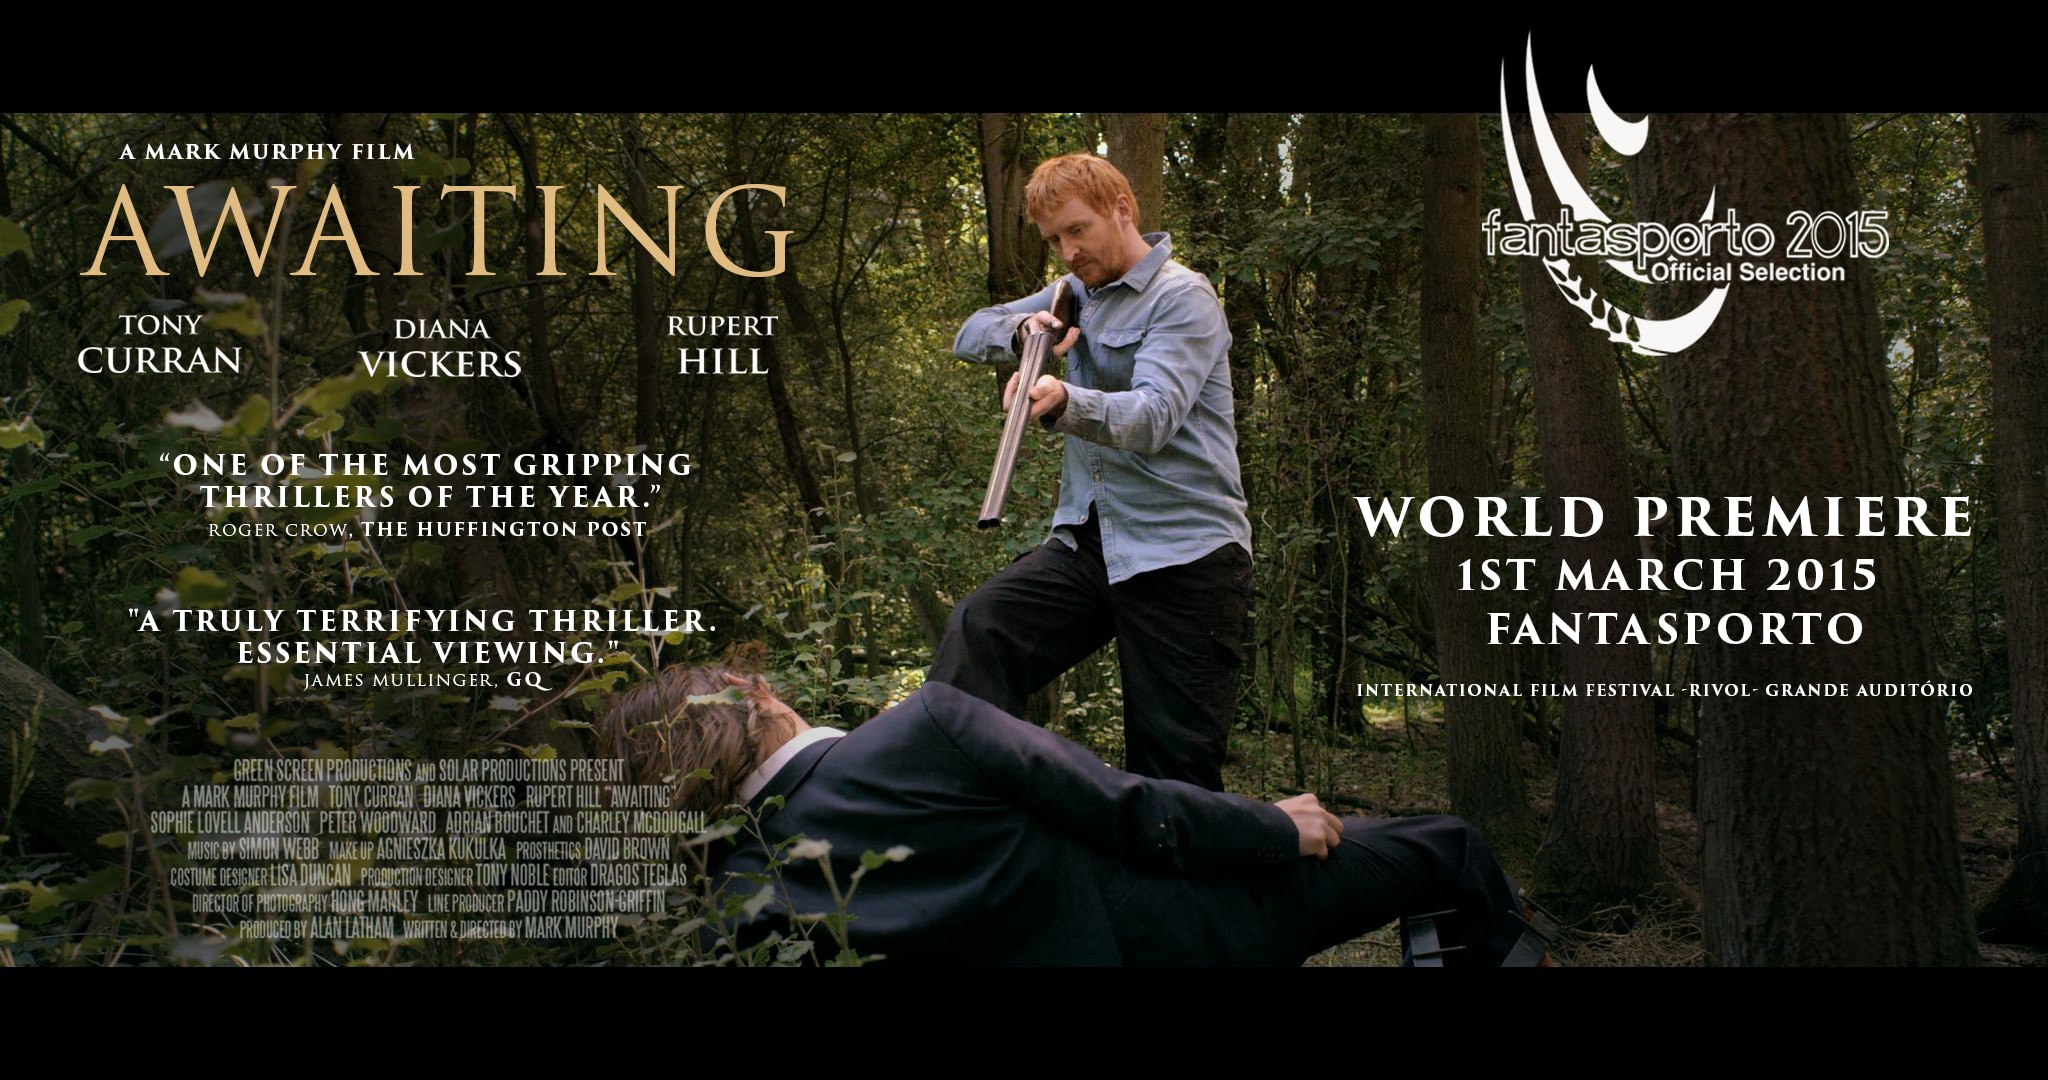 Awaiting Premiere - Awaiting Premiere Artwork Takes Aim